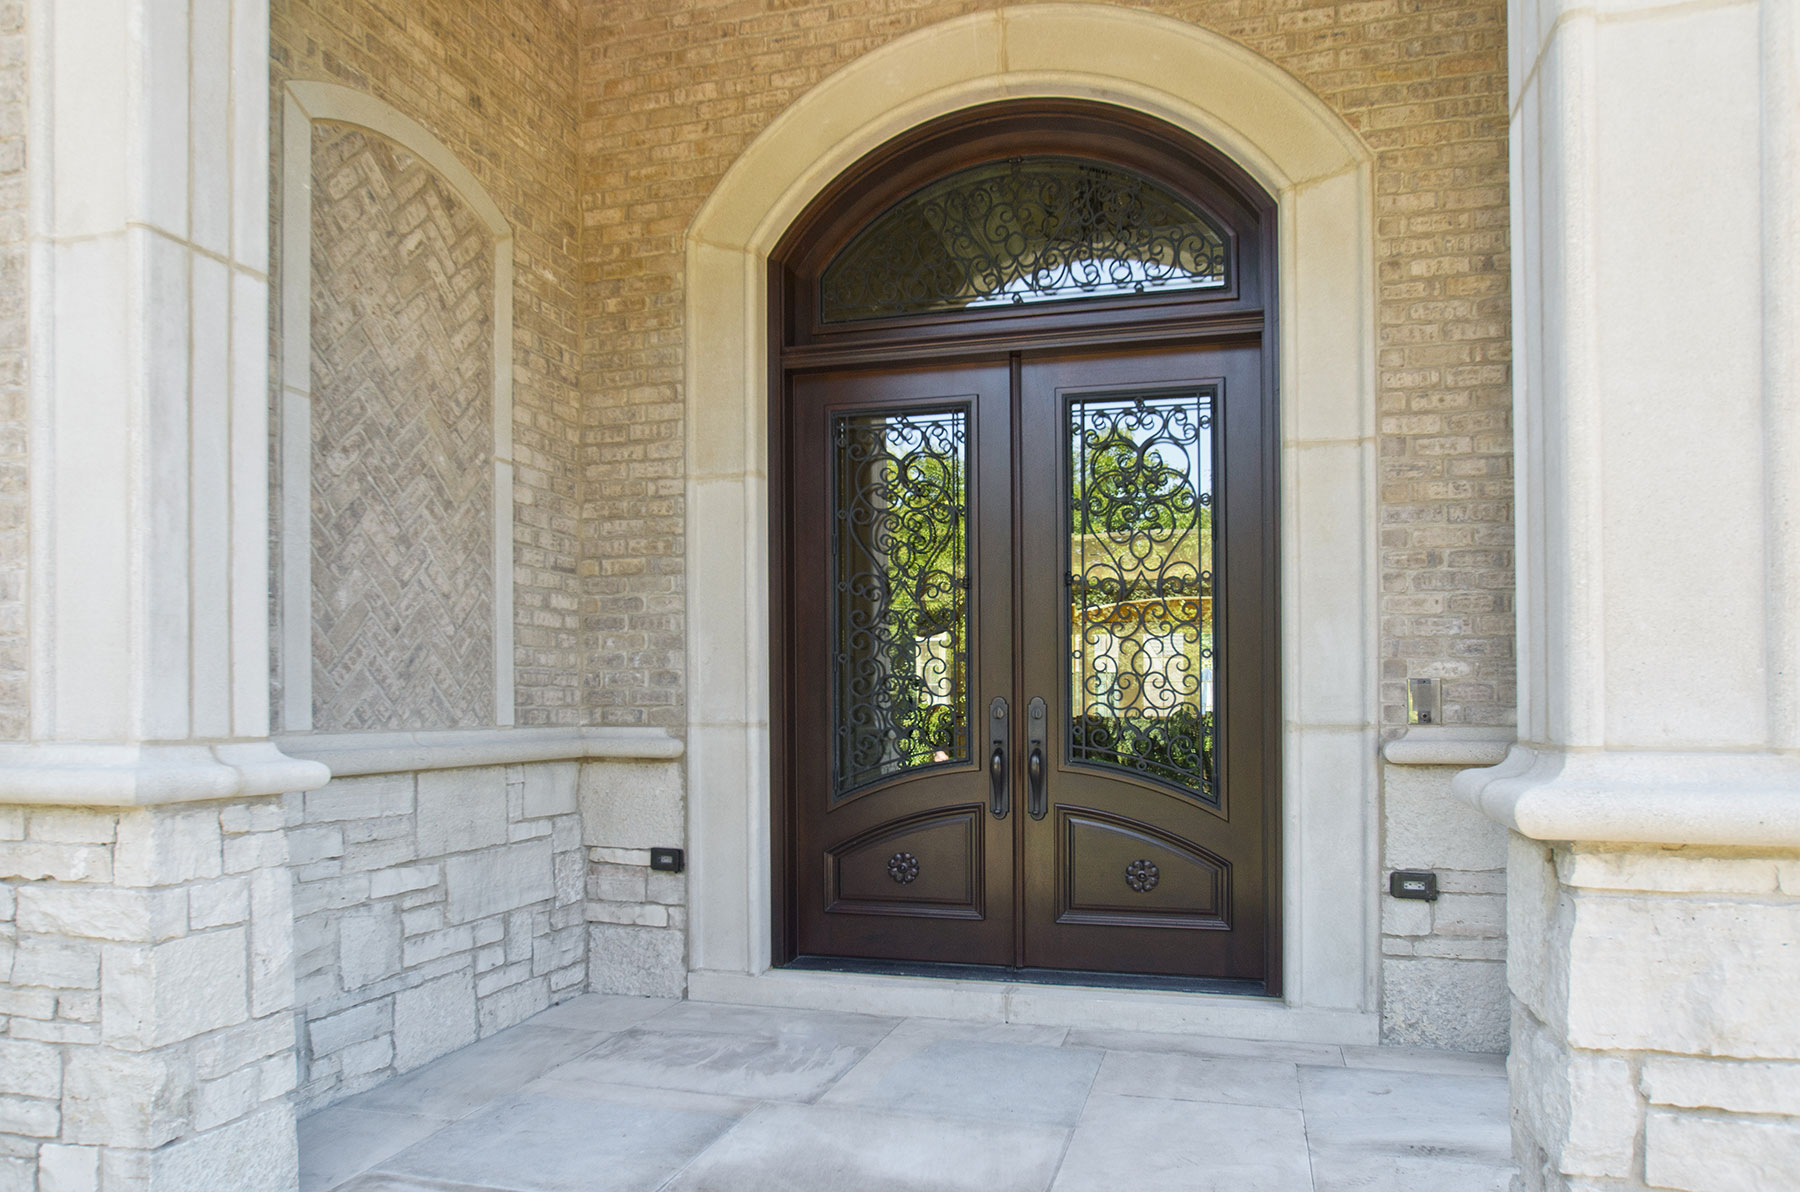 Custom Wood Front Entry Doors | Custom Solid Mahogany Wood Double Door with Transom, Walnut Finish, Wrought Iron, Heritage Collection DB-H003 DD S TR CST - Glenview Doors - Custom Doors in Chicago